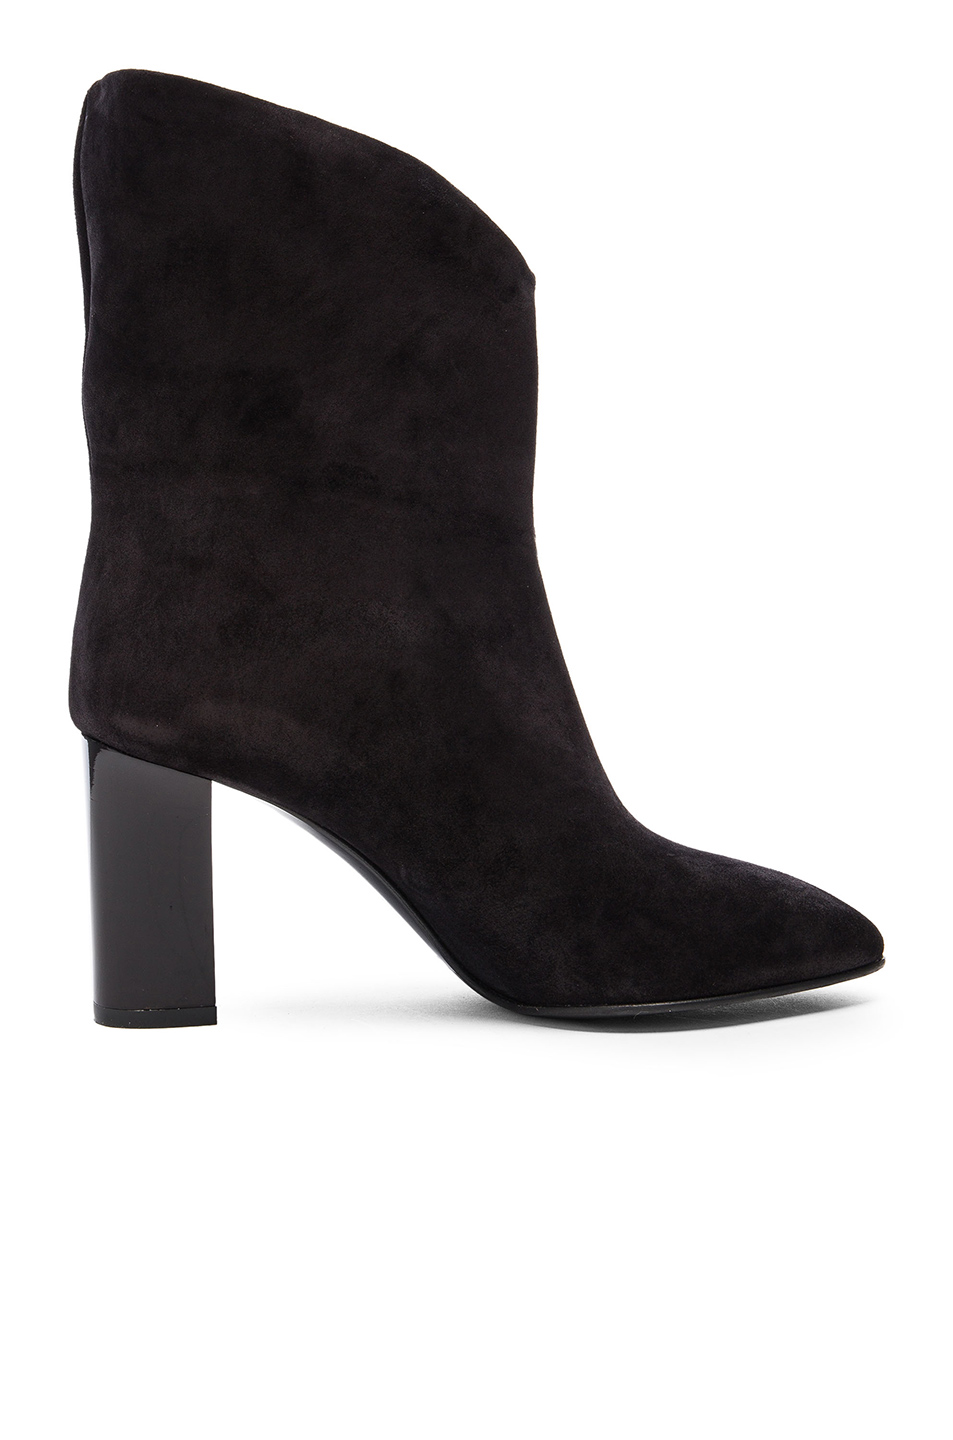 Acne Studios Suede Ava Boots in Black